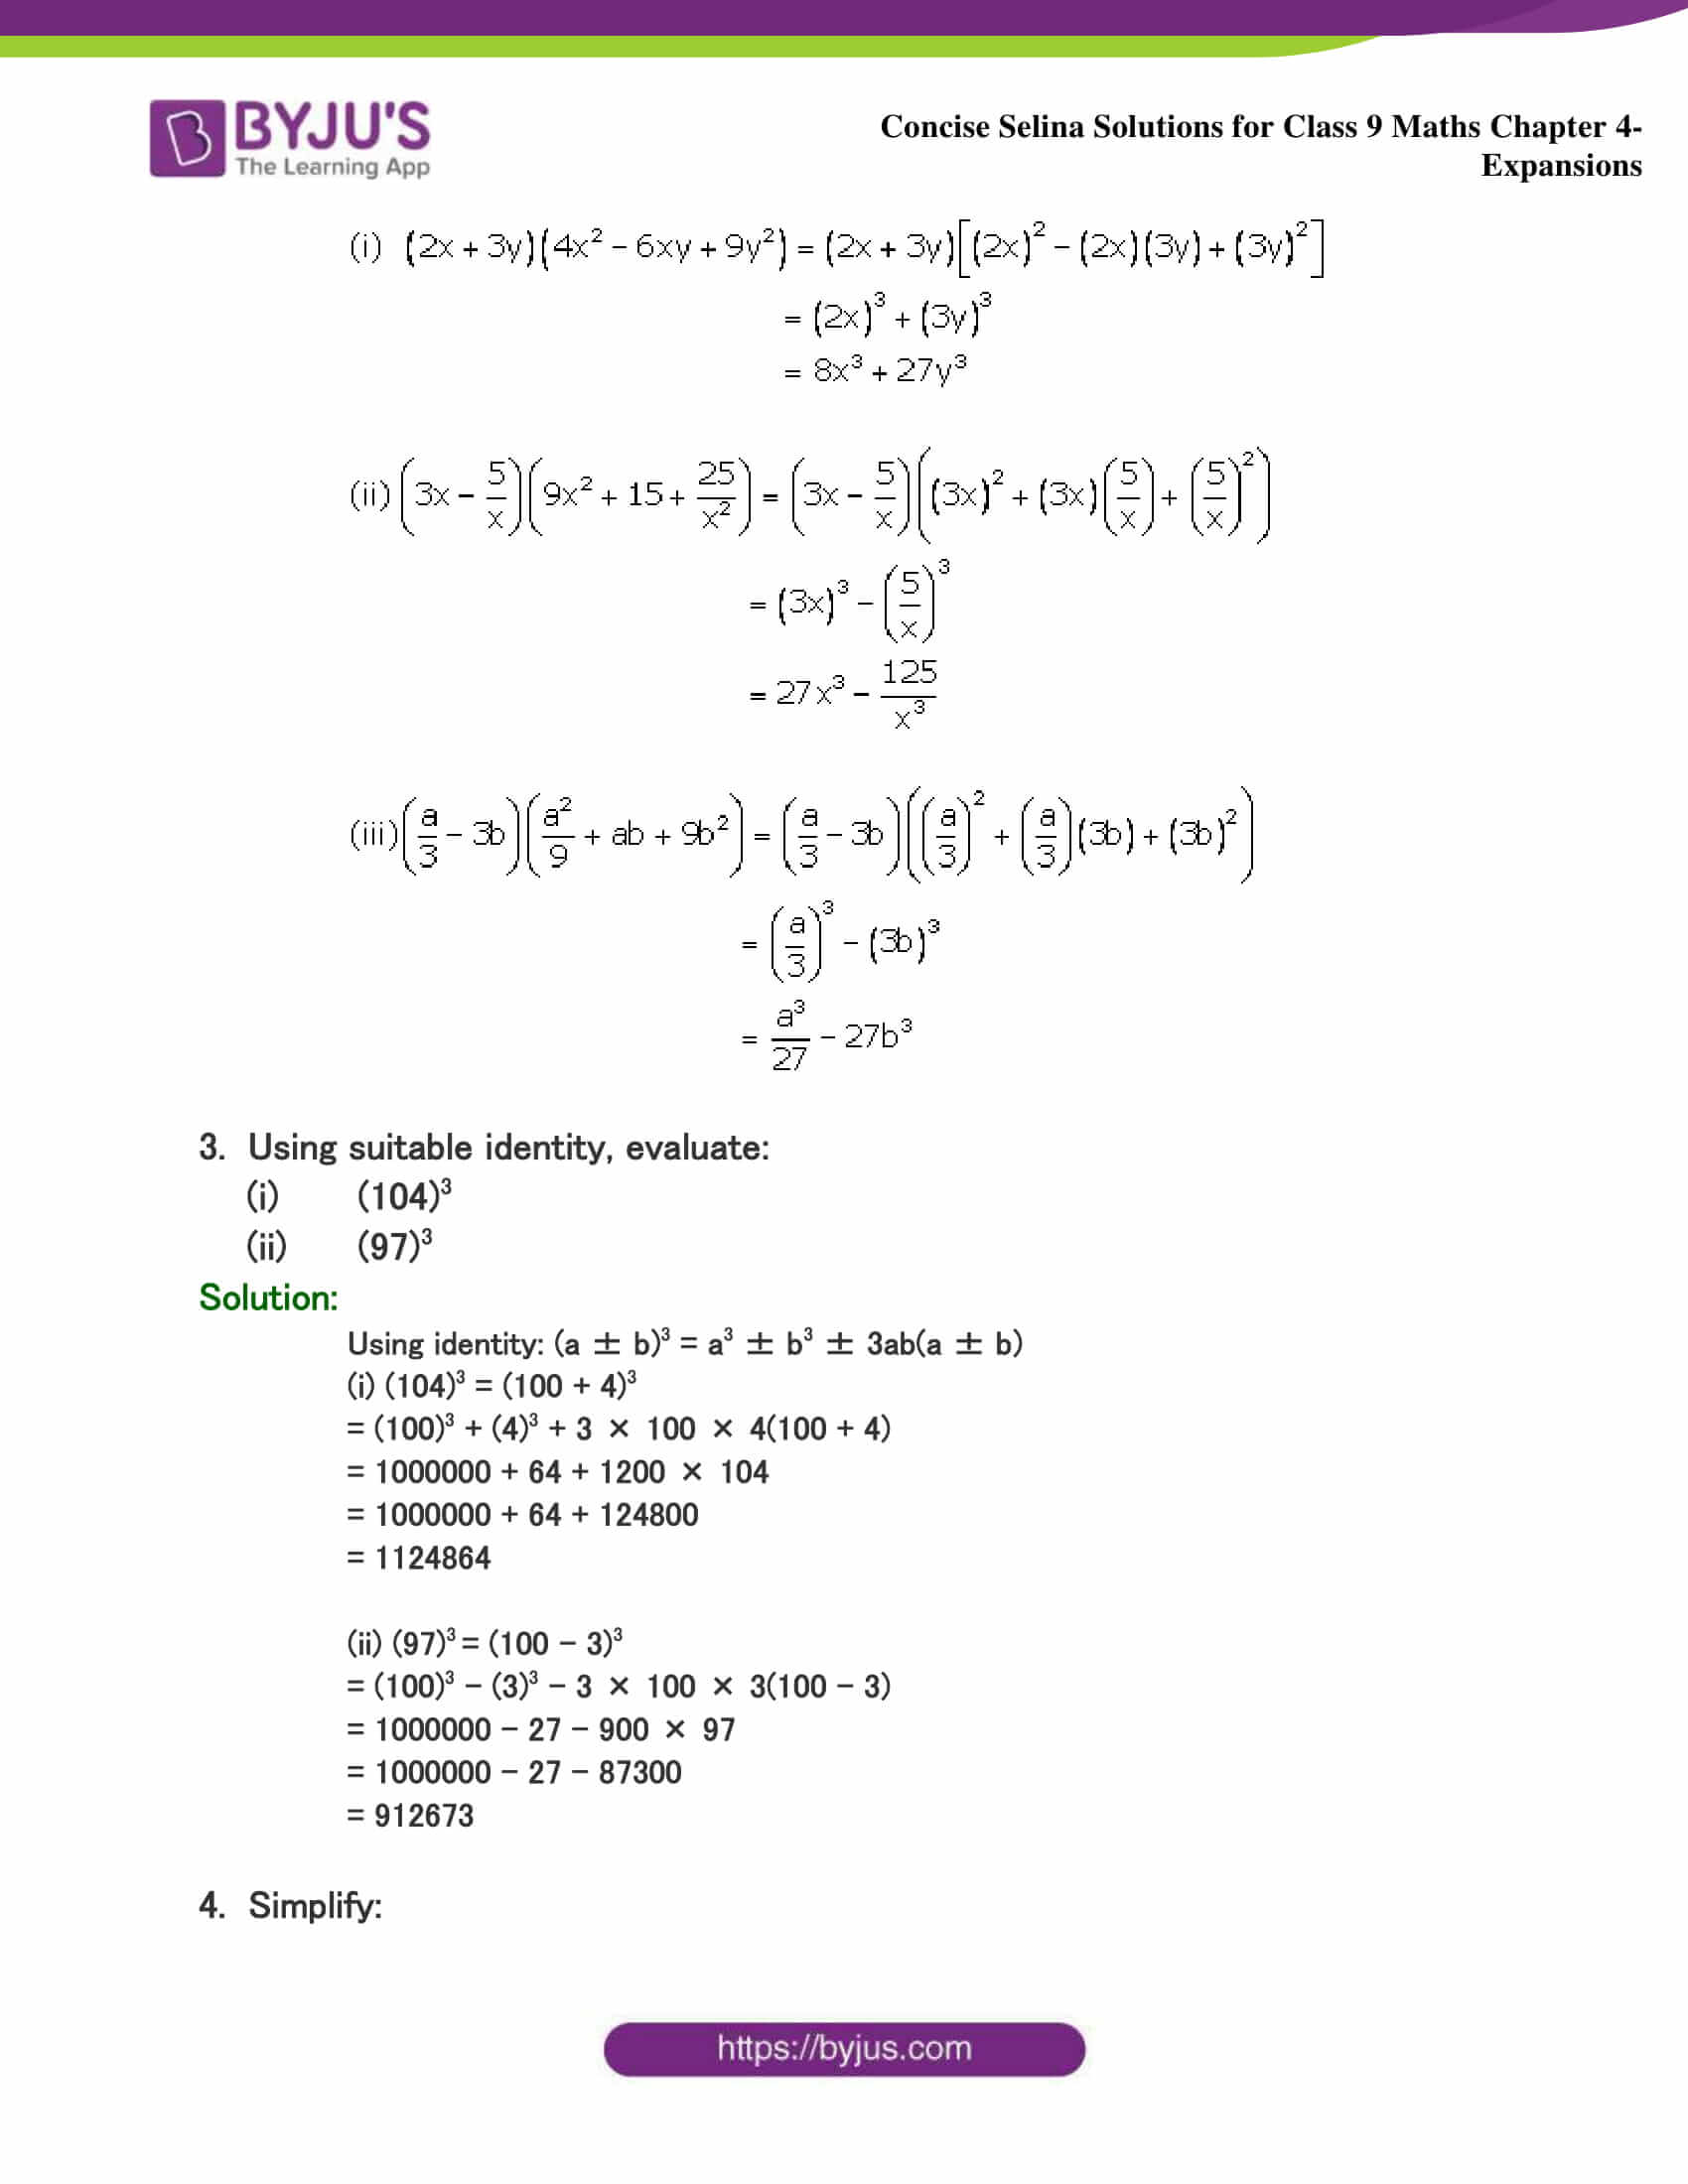 Selina Solutions Class 9 Maths Chapter 4 Expansions part 42